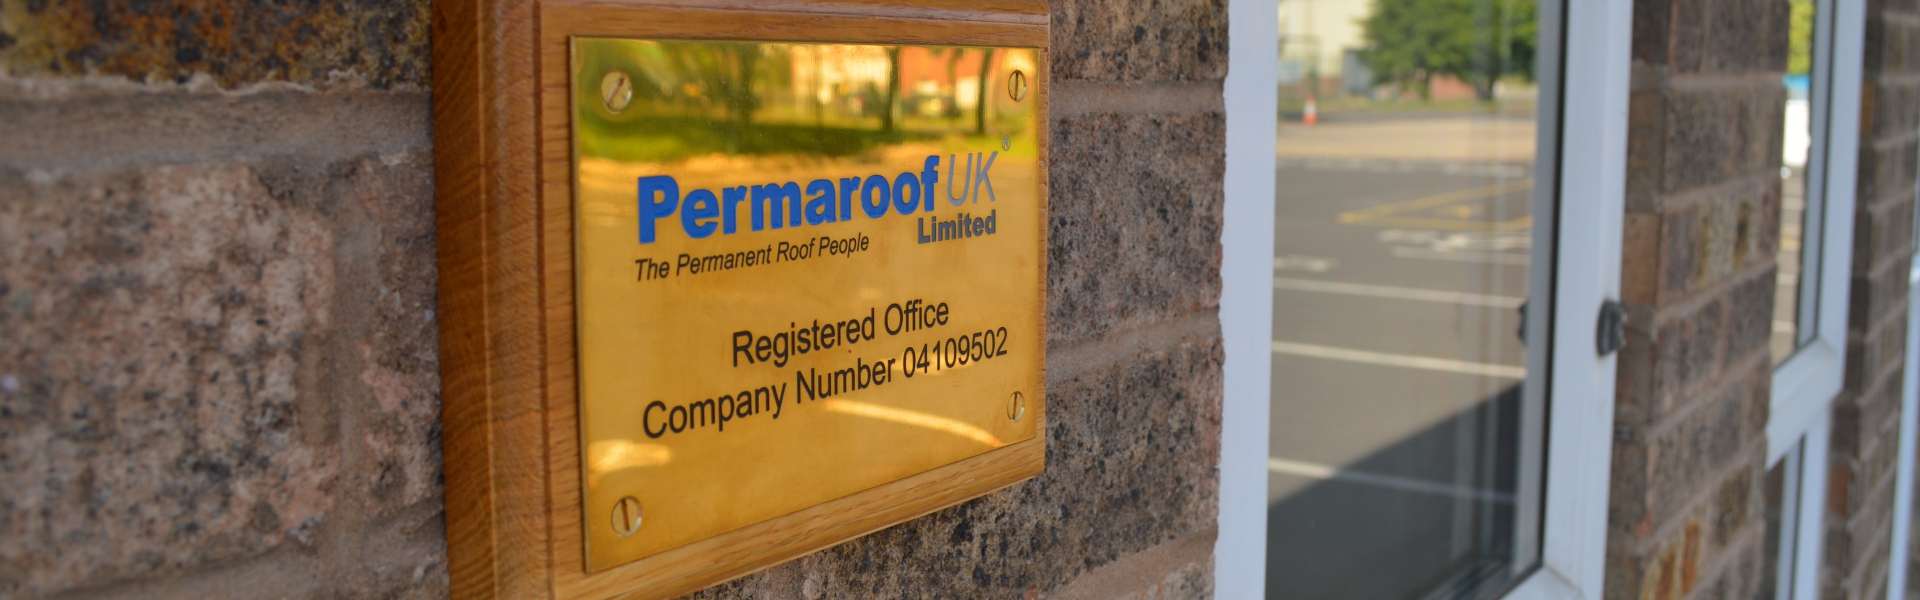 Permaroof UK - The Permanent Roof People